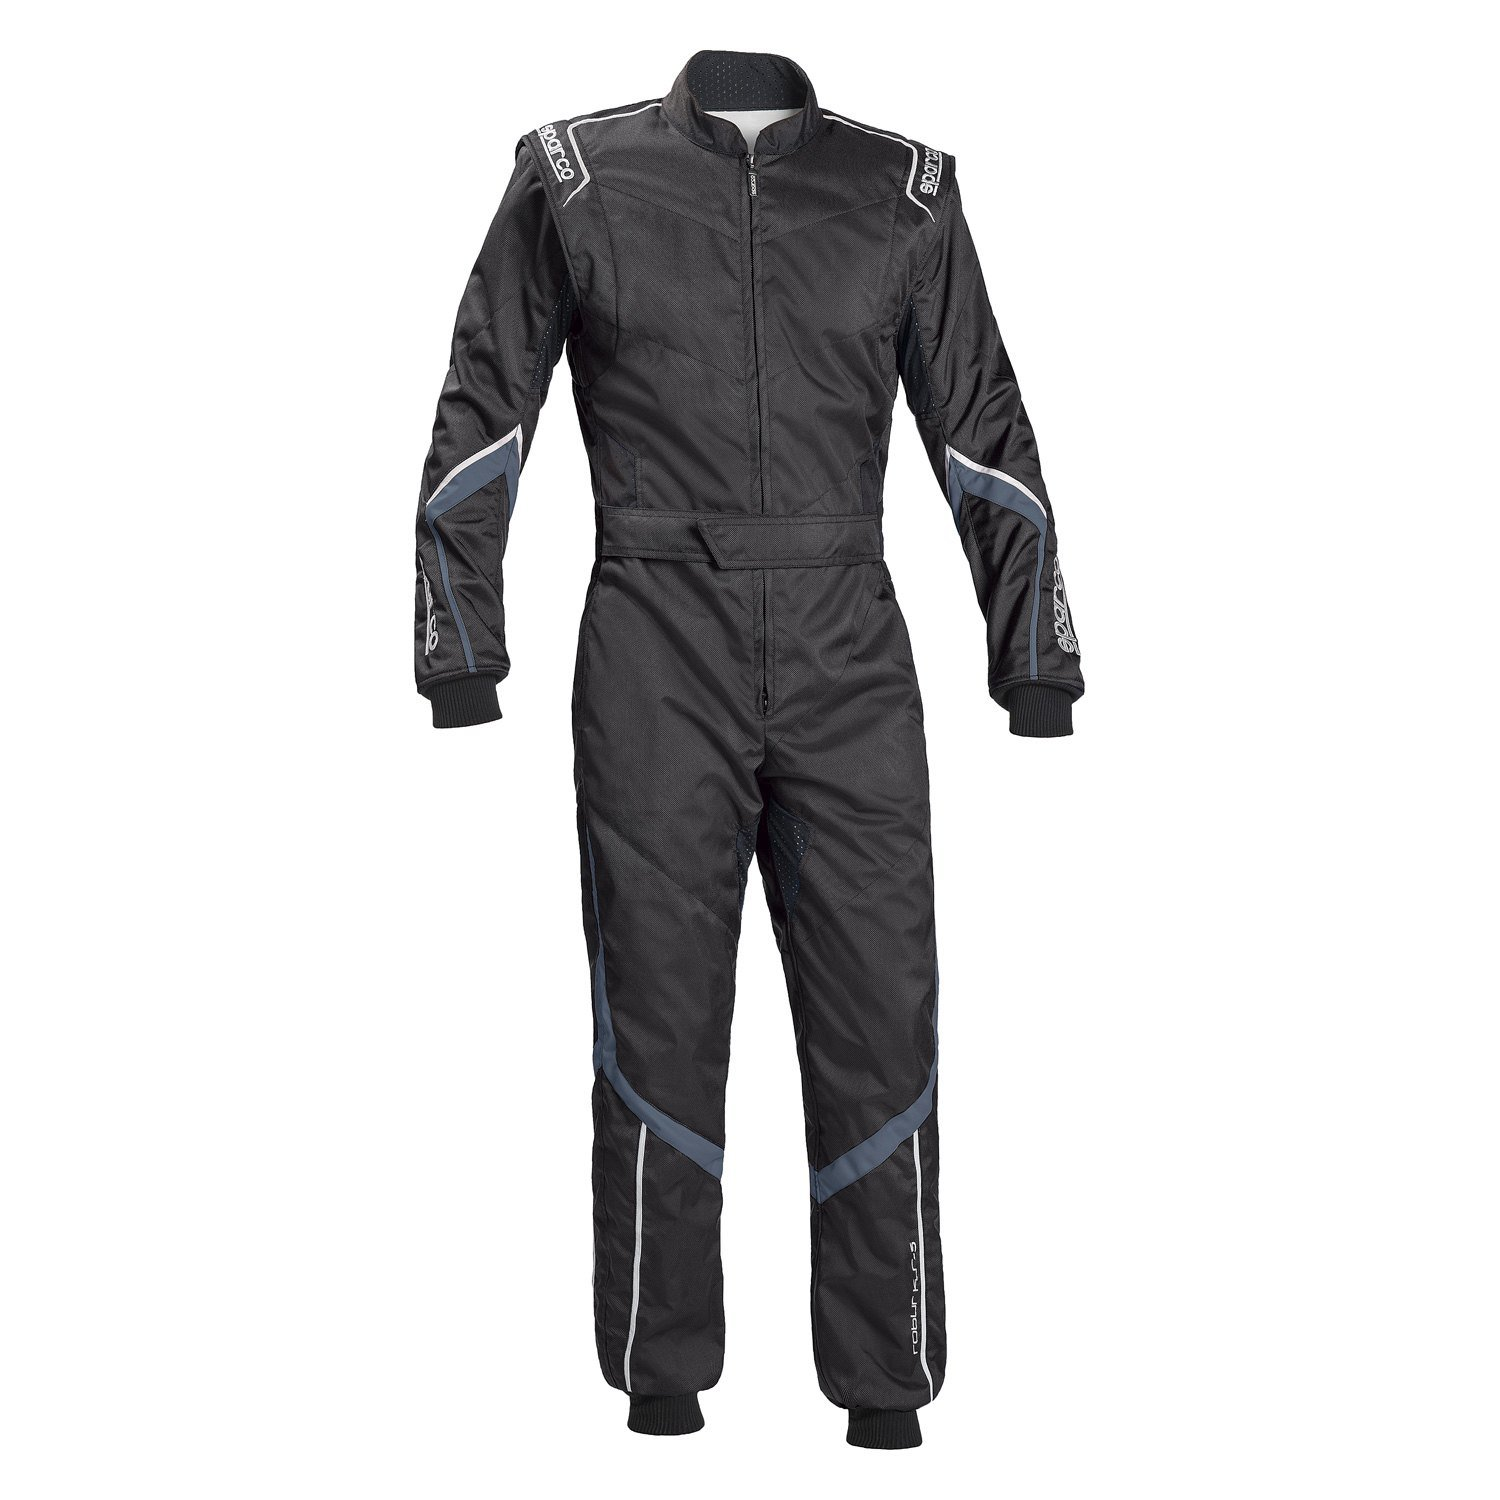 Robur KS5 Sml Blk//Gry Sparco 002335NGSB1S Suit